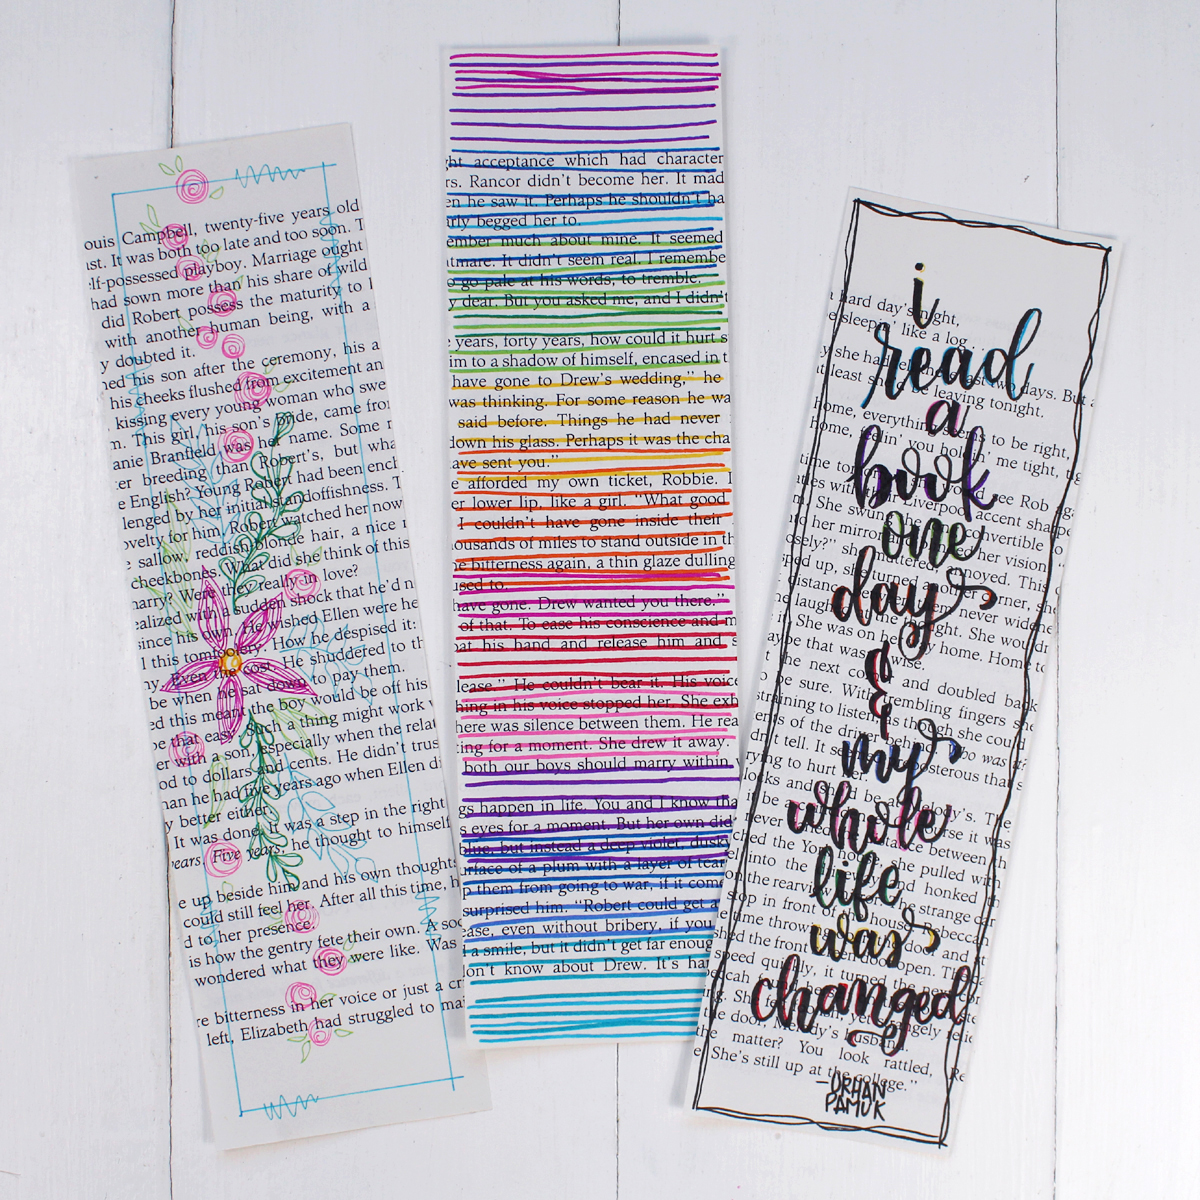 Finally, run them through a laminating machine. It makes the colors burst off the page. If you don't have access to a laminator, use a roll of packing tape to cover the bookmarks on both sides. Then trim the extra plastic with scissors.